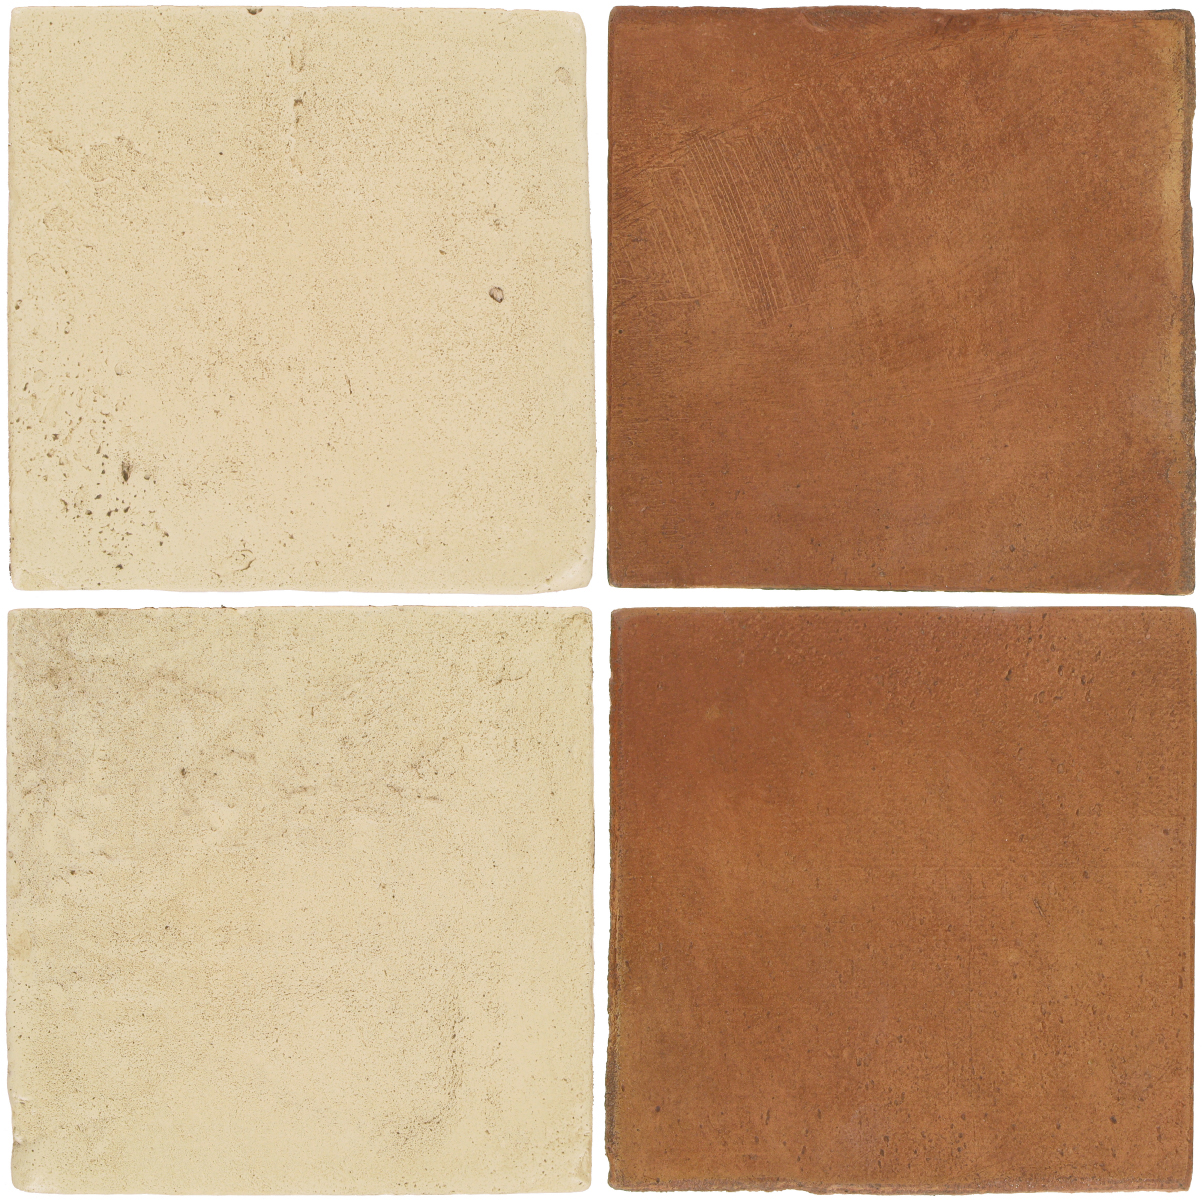 Pedralbes Antique Terracotta  2 Color Combinations  VTG-PGPW Pergamino White + OHS-PSTR Traditional